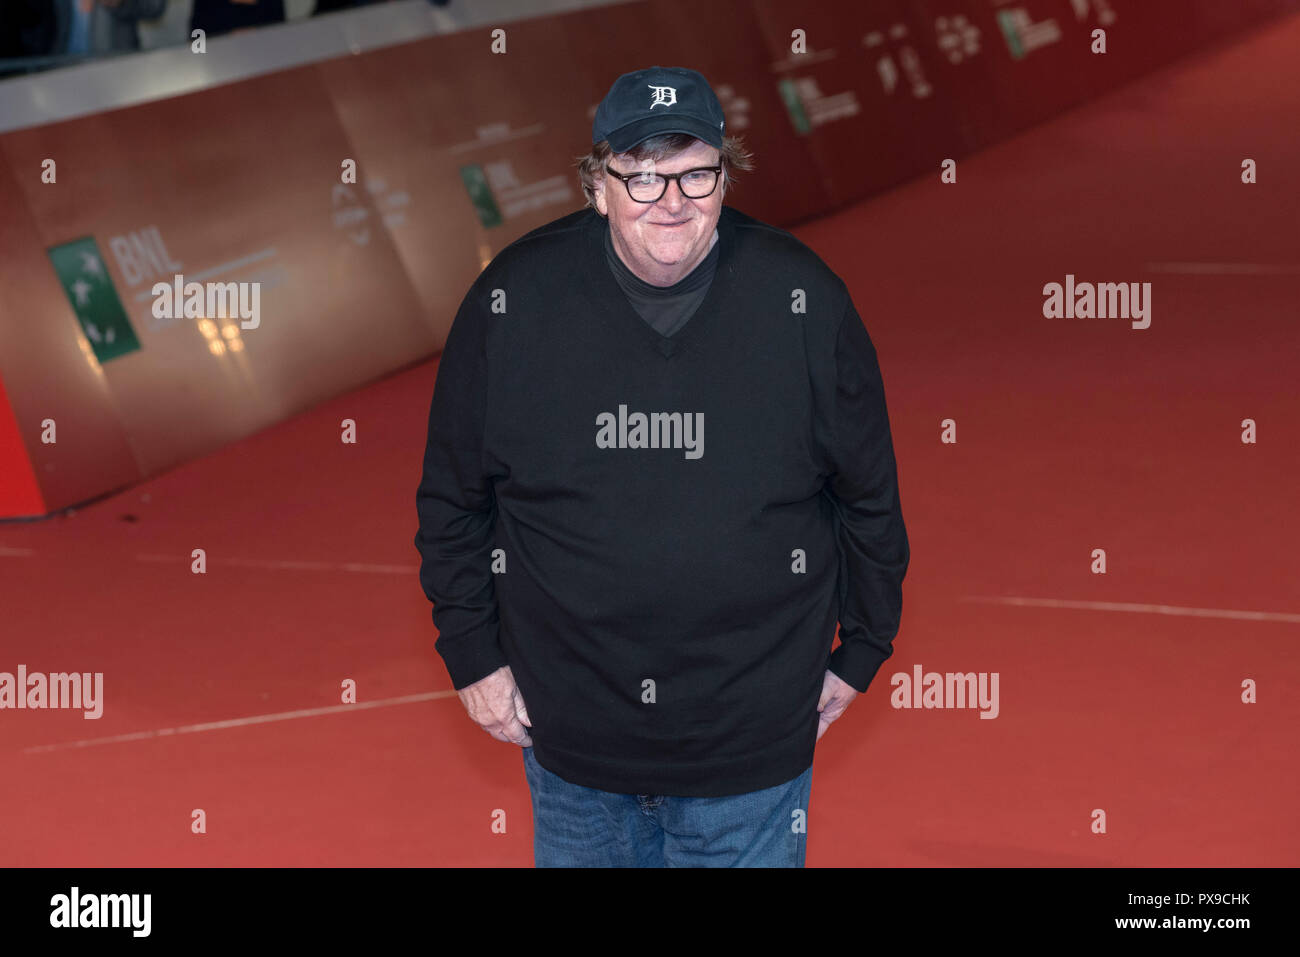 Rome, Italy. 20th Oct, 2018. Michael Moore attending the red carpet for Fahrenheit 11/9 at Rome Film Fest 2018 Credit: Silvia Gerbino/Alamy Live News Stock Photo